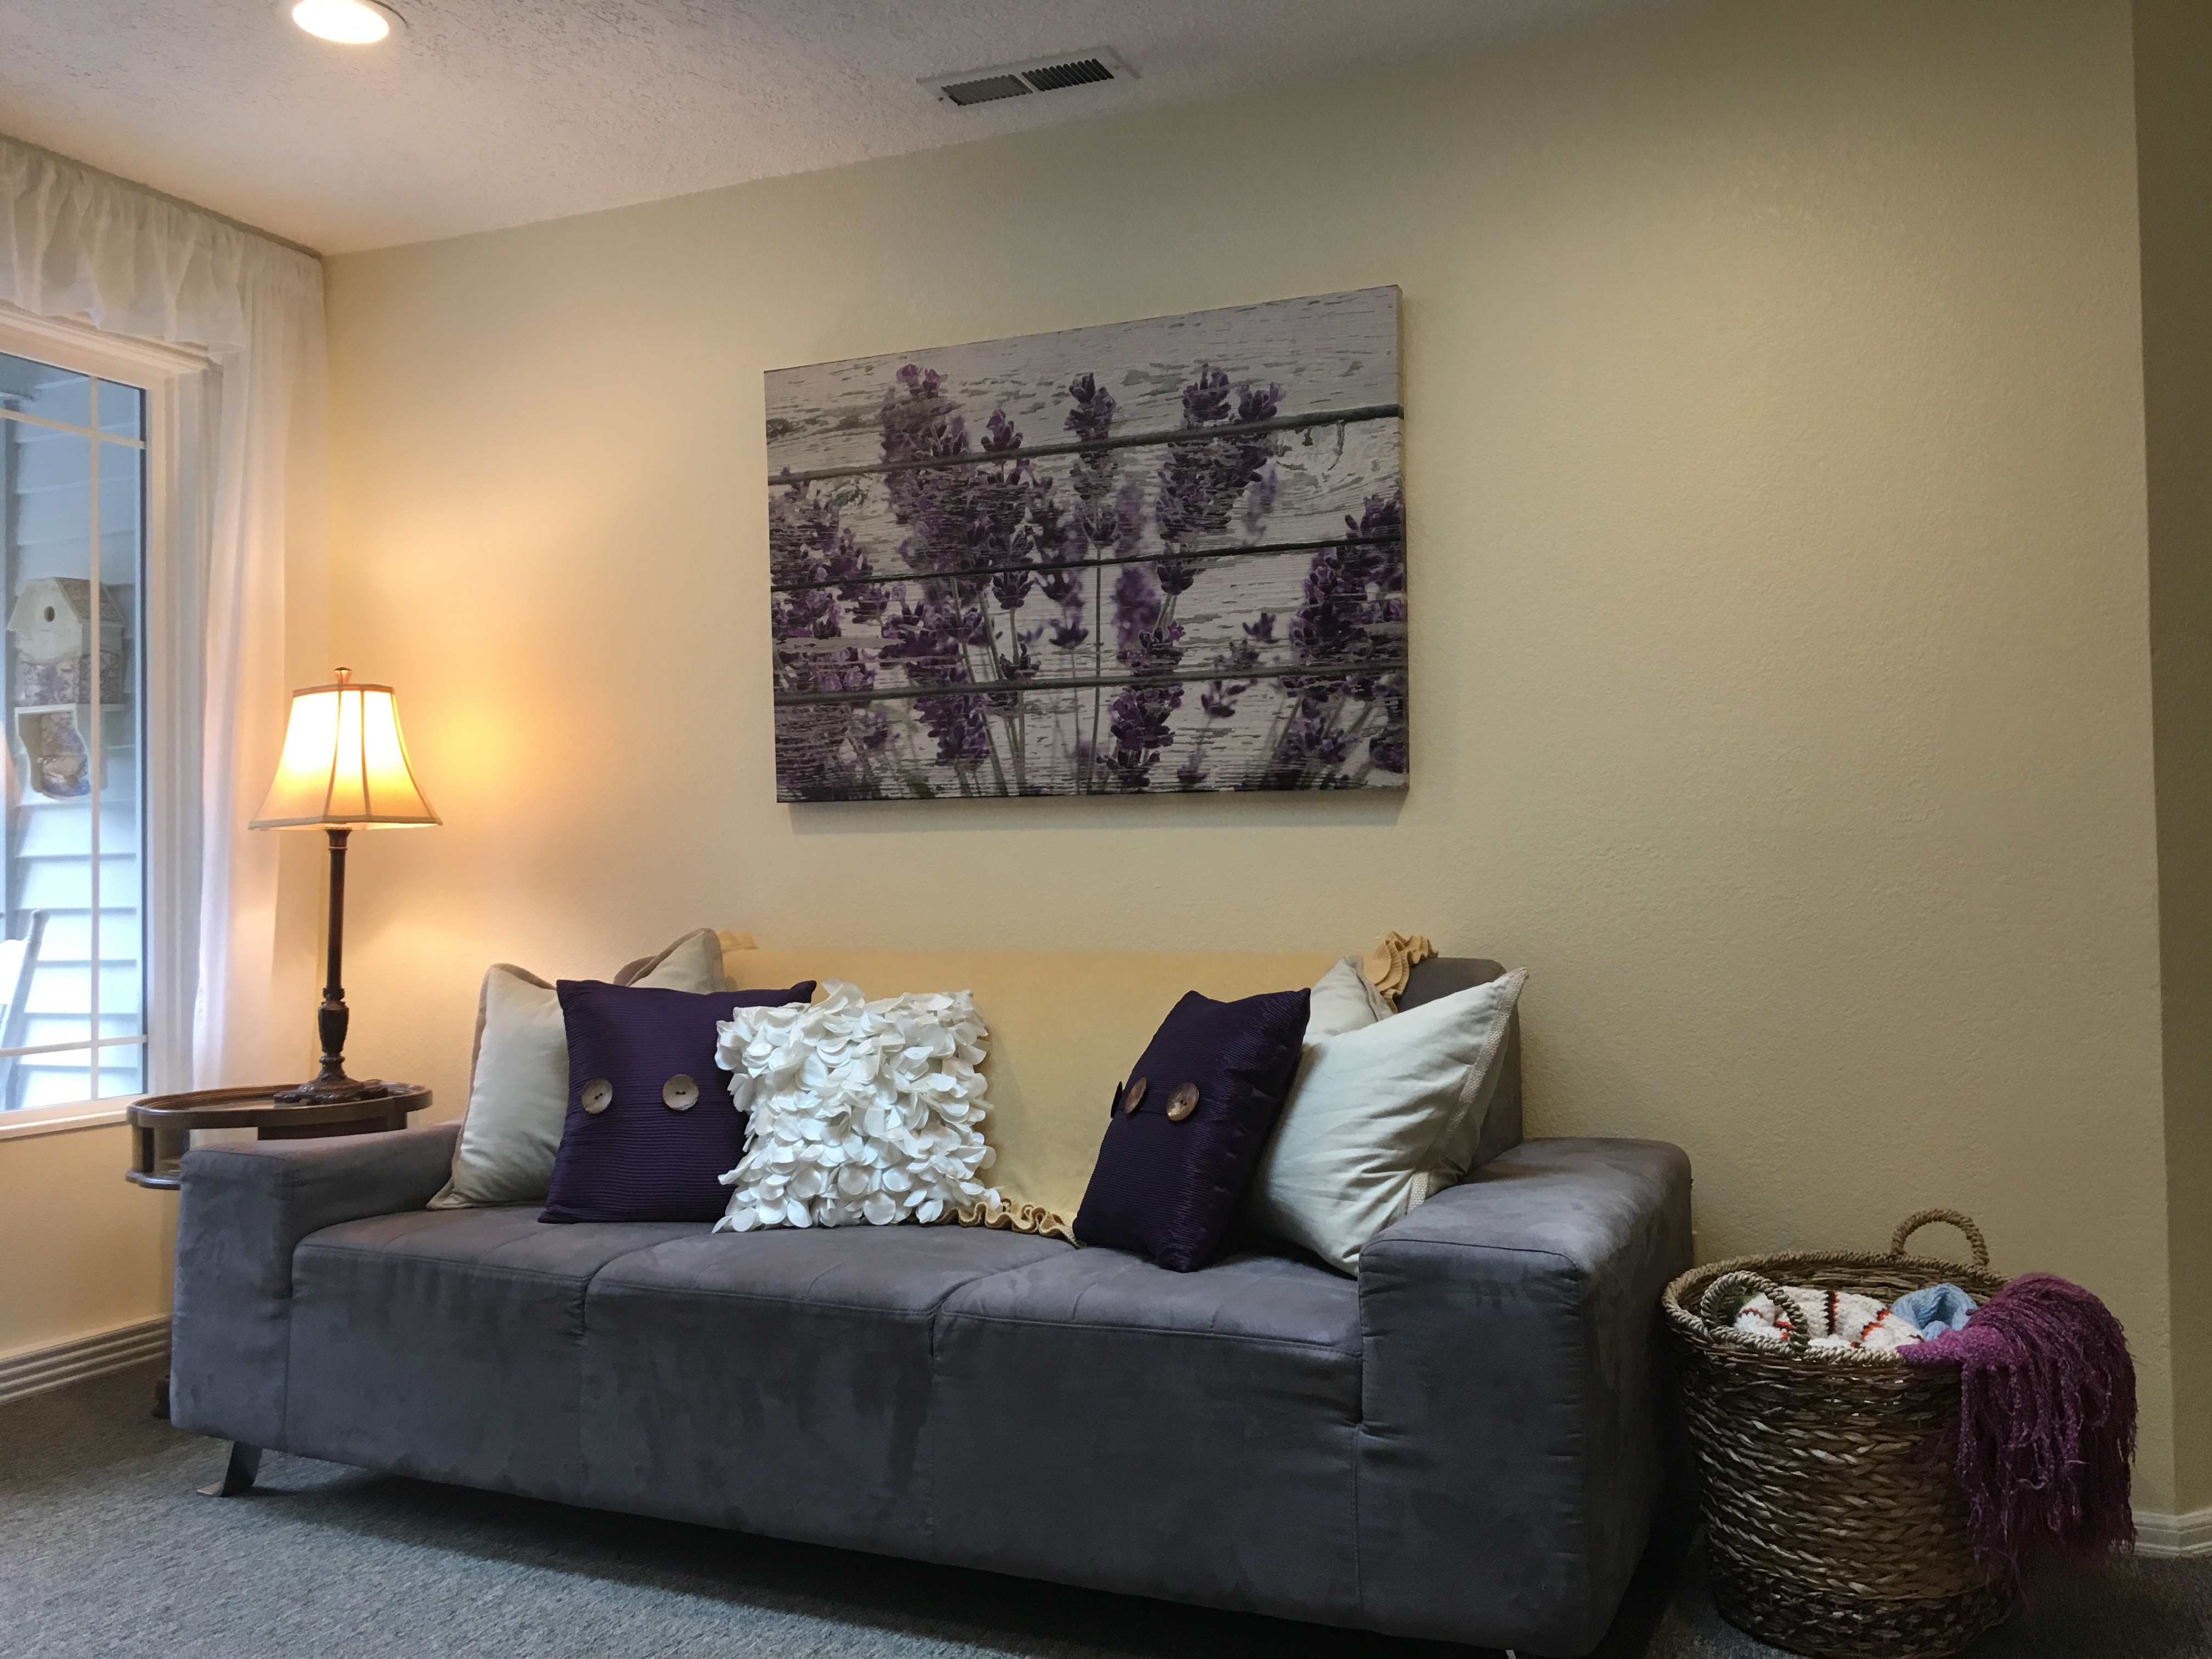 IMG_0236. couch2jpg